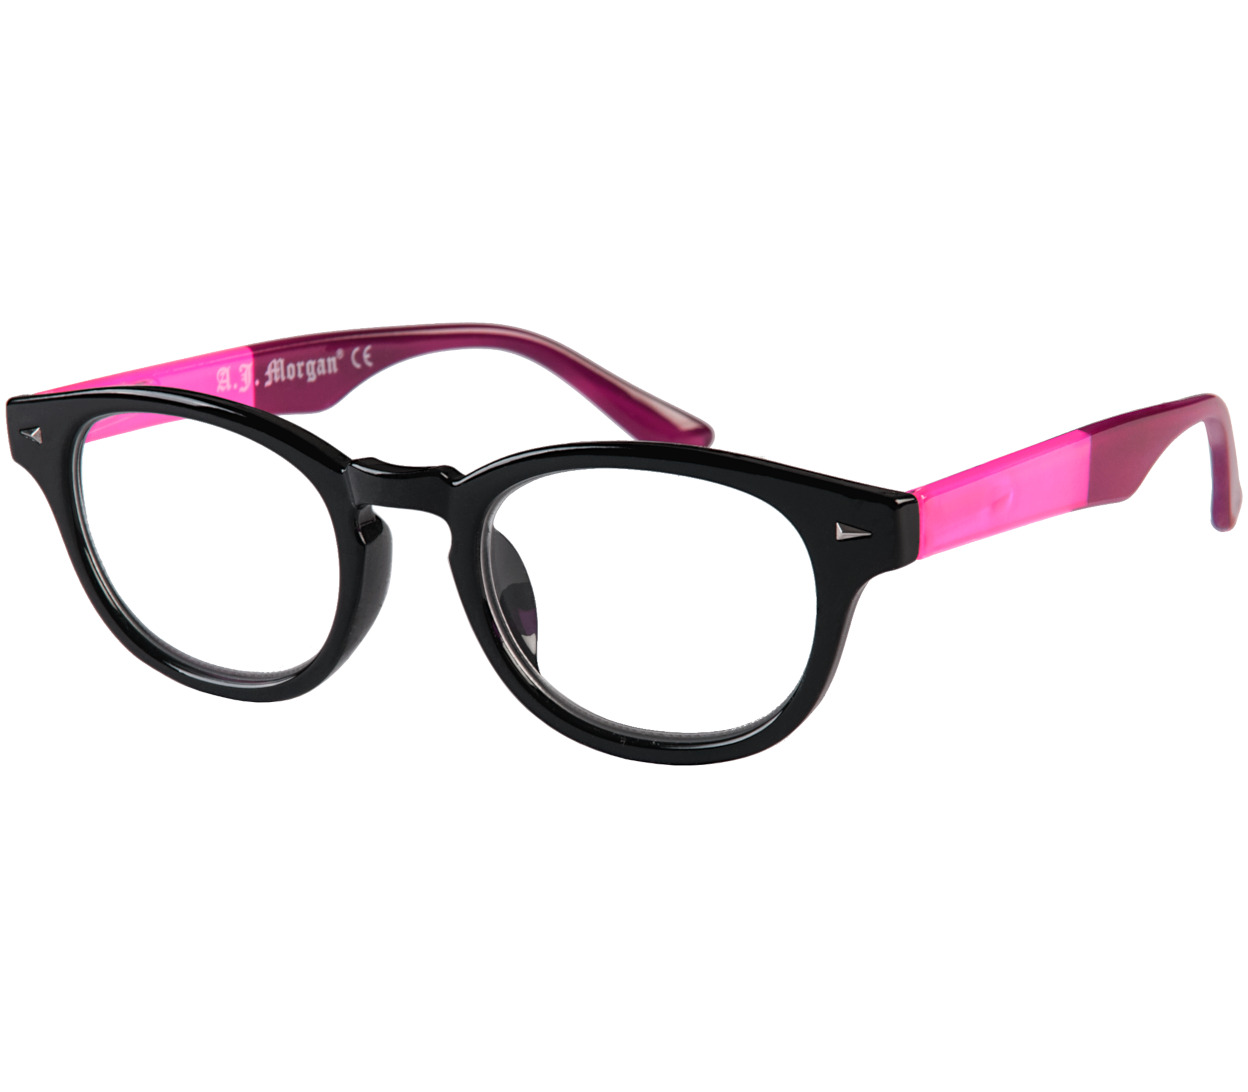 Main Image (Angle) - Big Fun (Black) Retro Reading Glasses